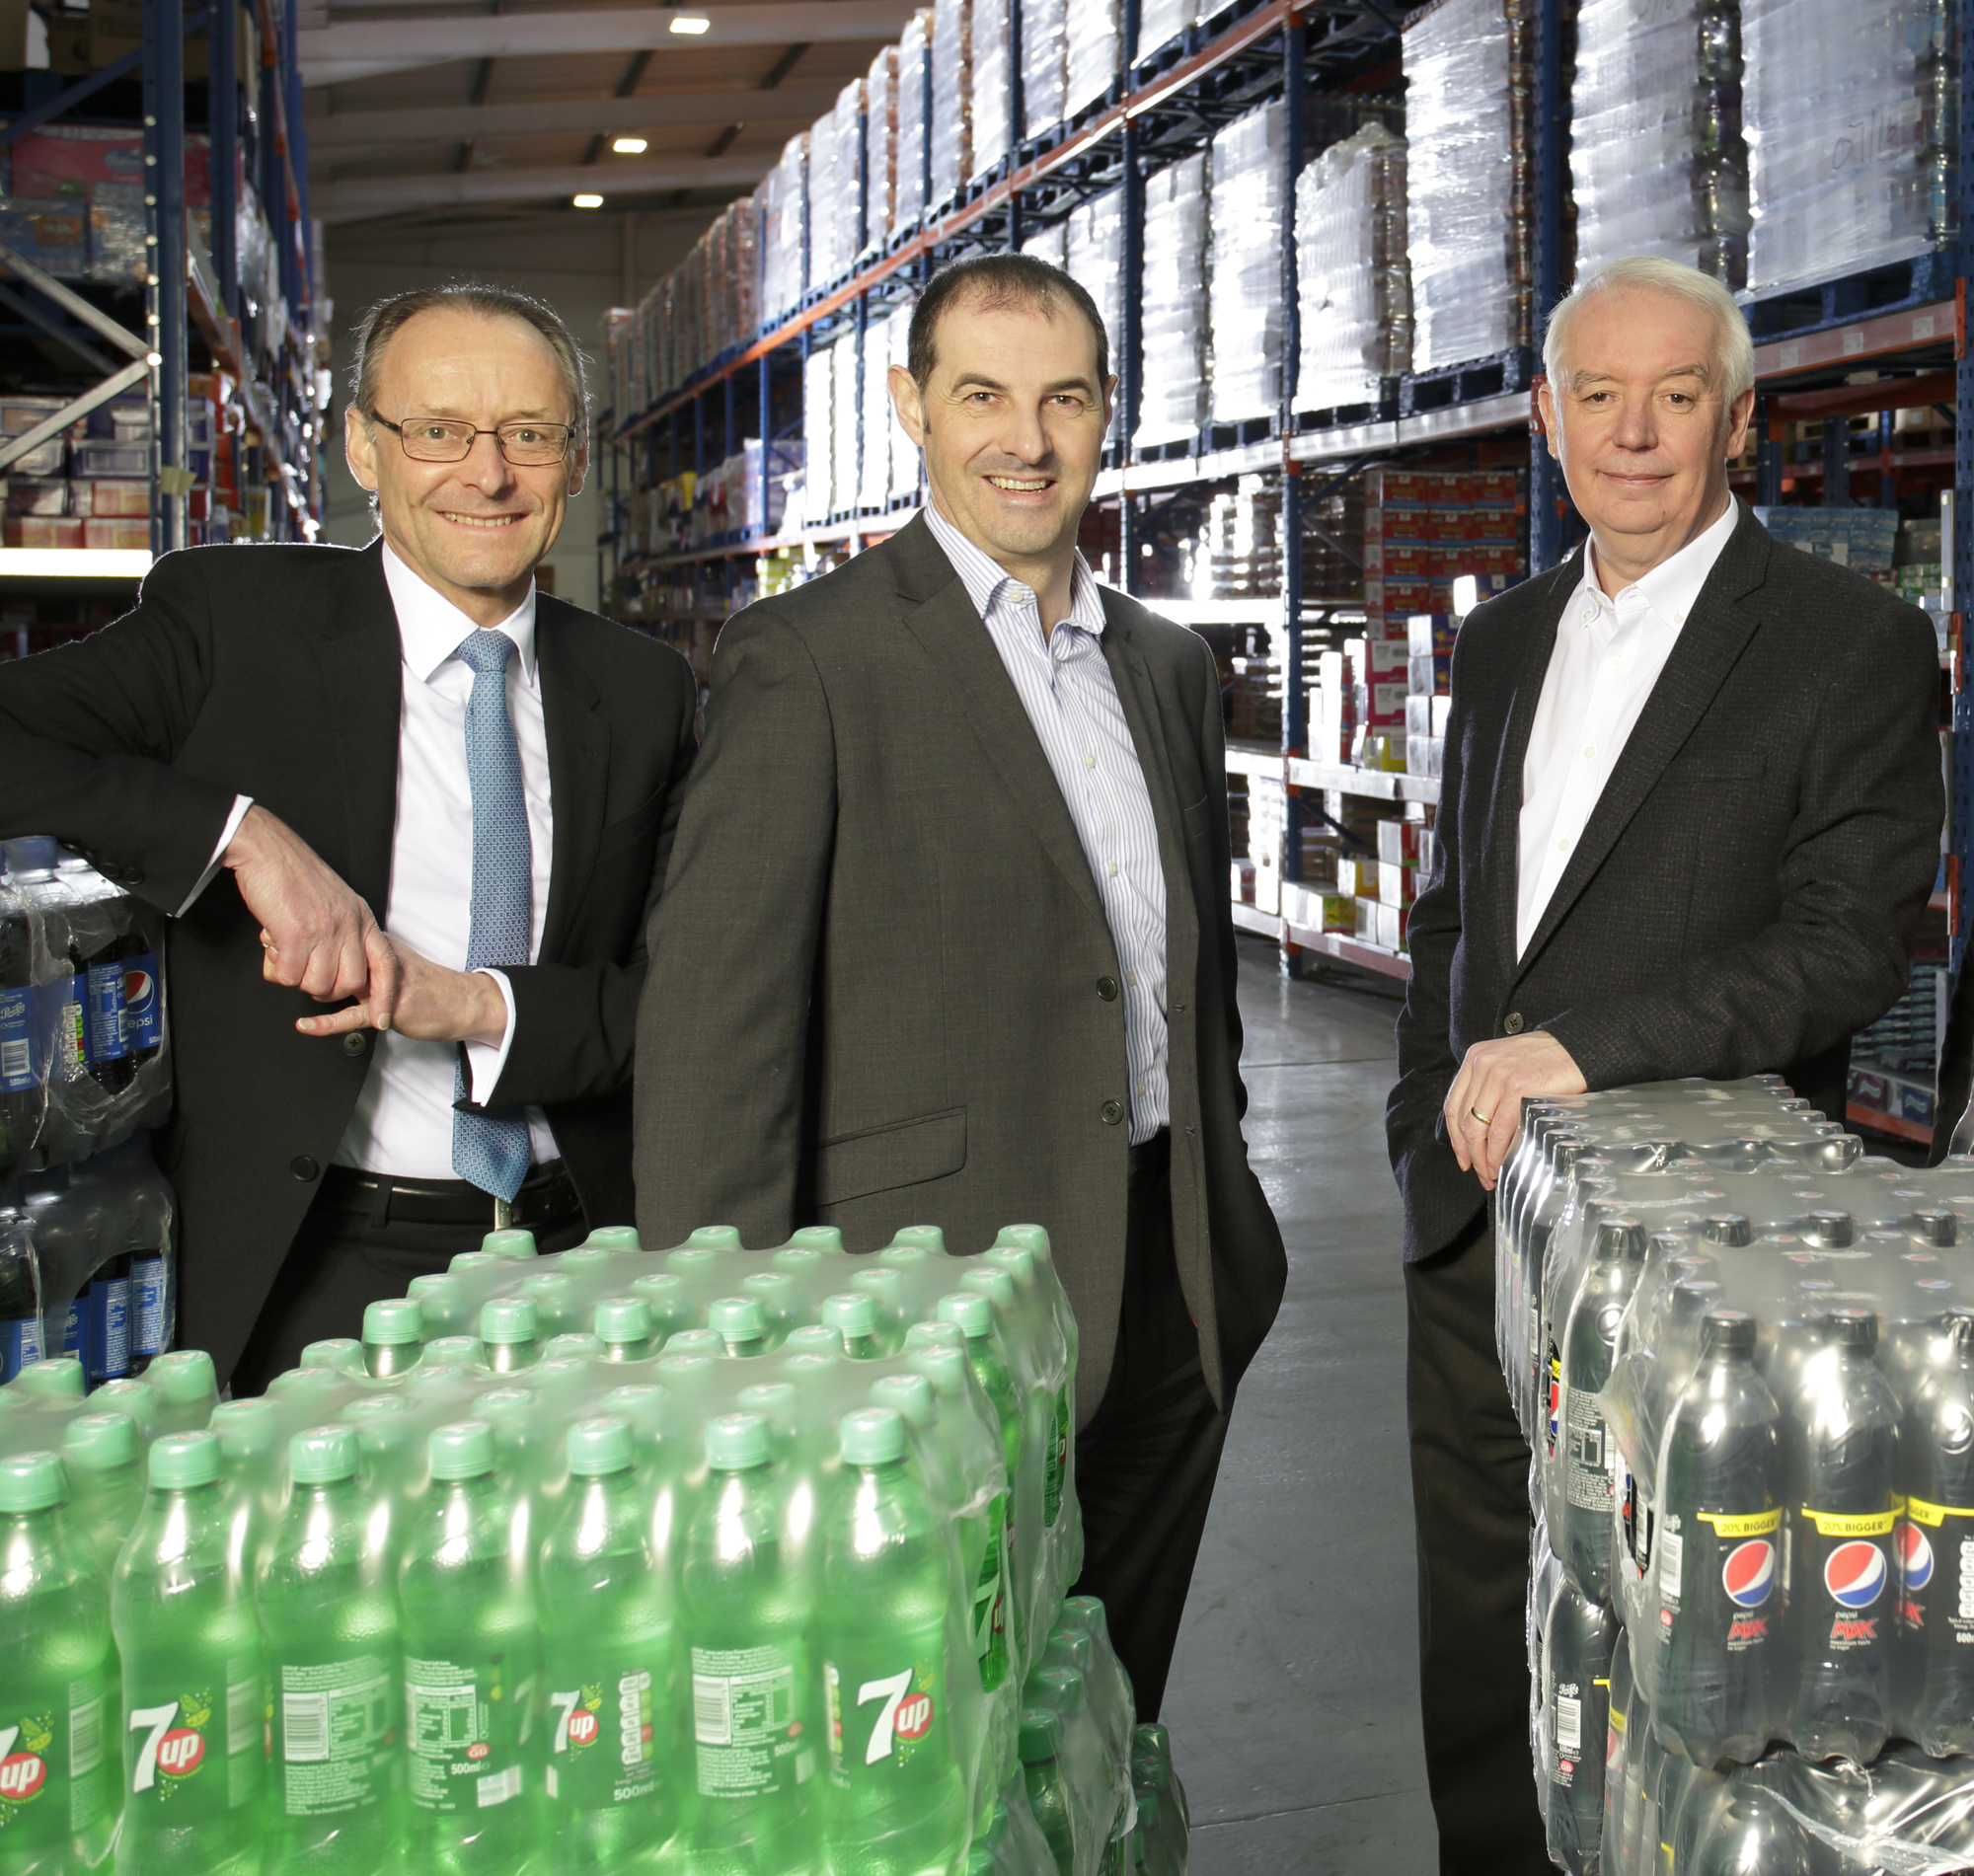 L-R Hugh Welch, Muckle; David Brind, Kitwave FD; Paul Young, Kitwave CEO